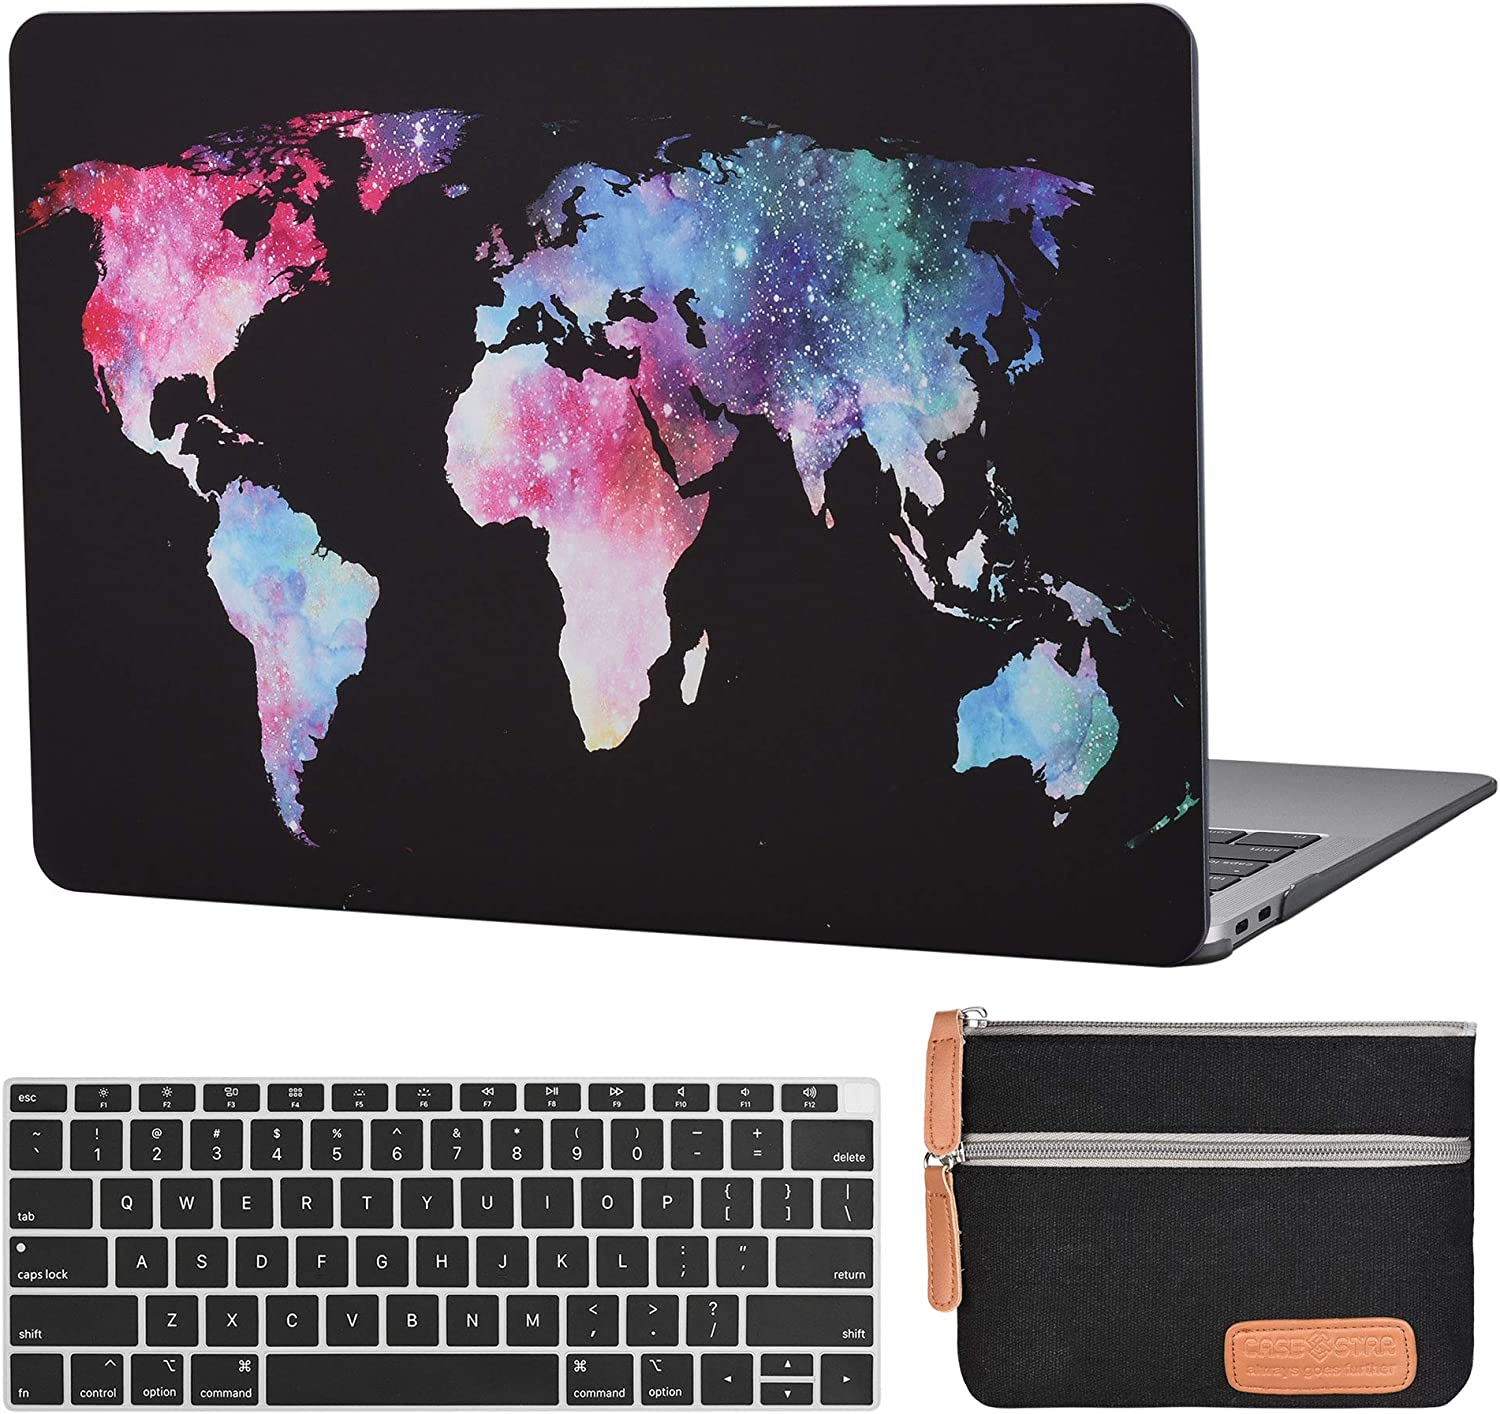 MacBook air 13 Inch Laptop Case A1932 A2179 Plastic Laptop Hard Shell Cover Sleeve Matte Rubberized (2020 2019 2018 Release, Touch ID) with Silicon Keyboard Cover and Small Pouch (Map Black)